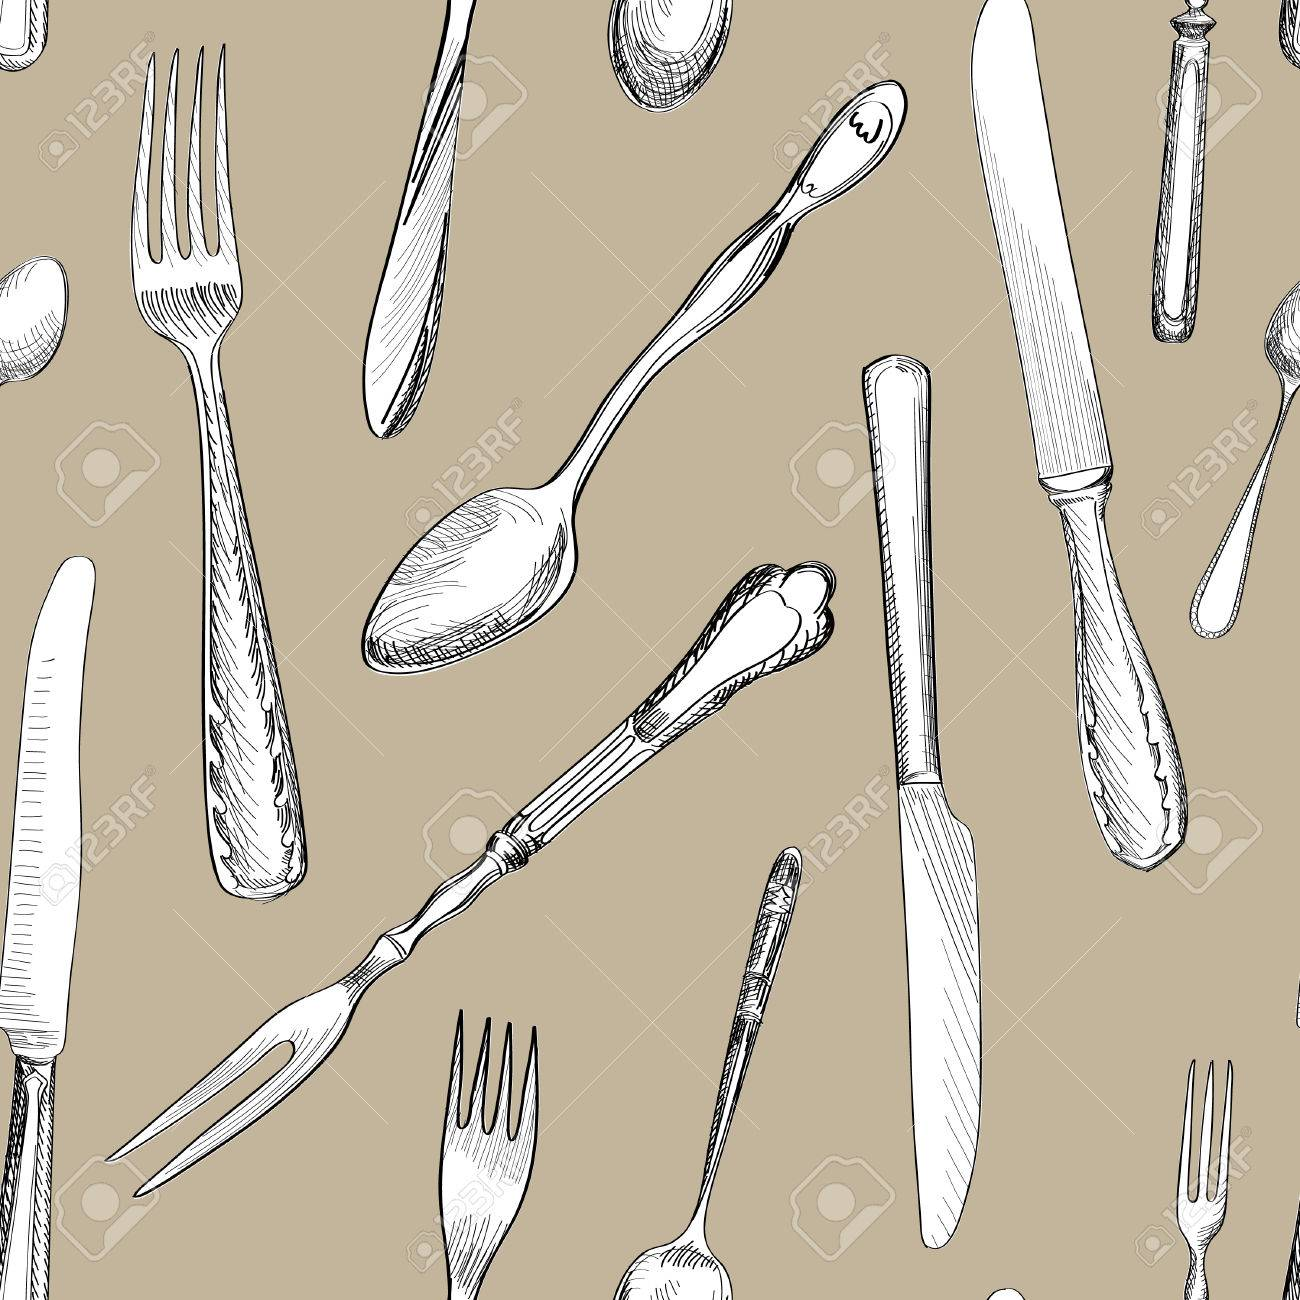 1300x1300 Fork, Knife, Spoon Hand Drawing Sketch Seamless Texture. Cutlery